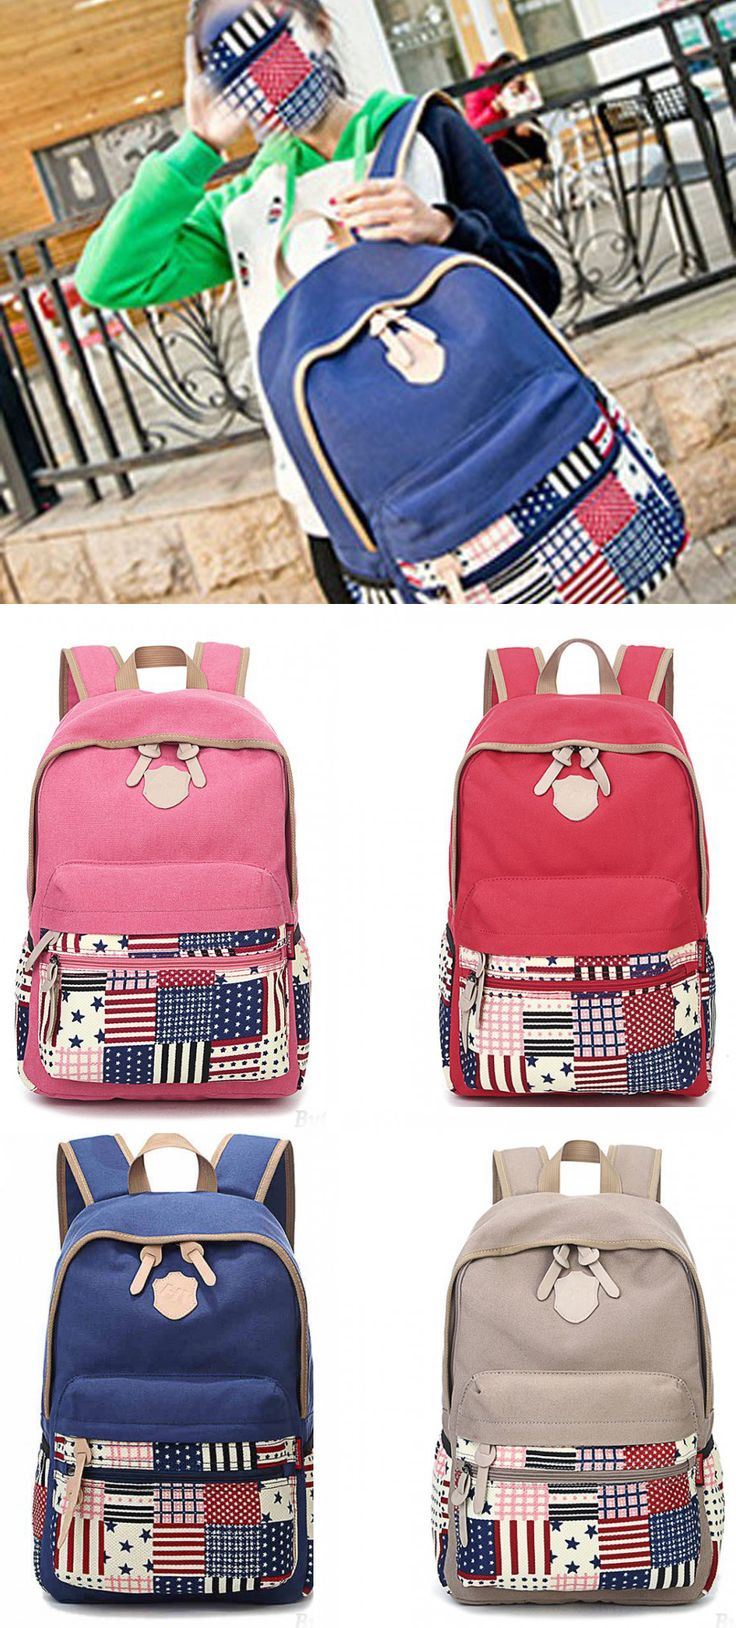 2017 New Leisure Flag Patchwork Canvas Backpacks School Bags backpack trends 2017,backpack trends 2017 school,backpack trends 2017 women,backpack yellow,backpack yellow fashion,backpack pattern,backpack patches,backpack patches diy,backpack patches travel,backpack patches vintage,backpack for teens,backpack for teens school,backpack for teens 2017,backpack for travel,backpack for travel women,backpack for traveling,backpack for traveling bags,backpack for travel cute,backpack for women